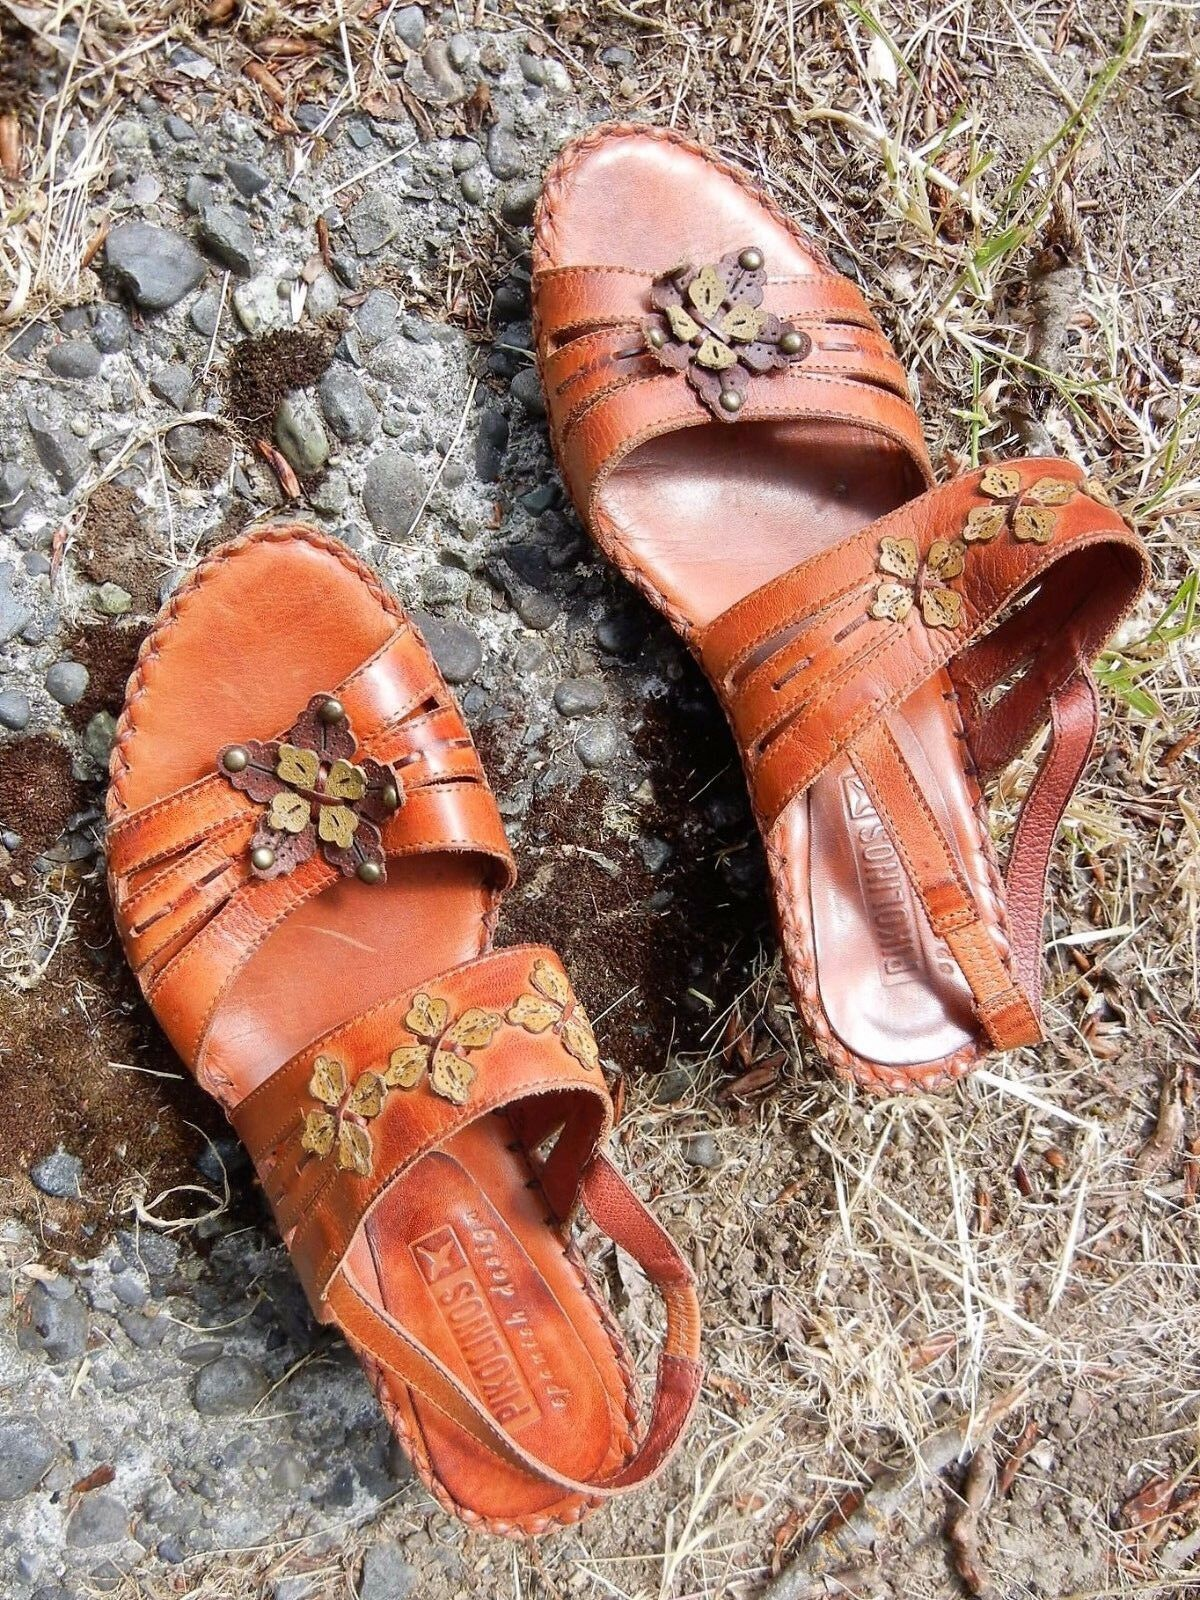 PIKOLINOS SANDALS BROWN 6 1/2 -7 USA BROWN SANDALS SPAIN SOFT LEATHER 2 1/2